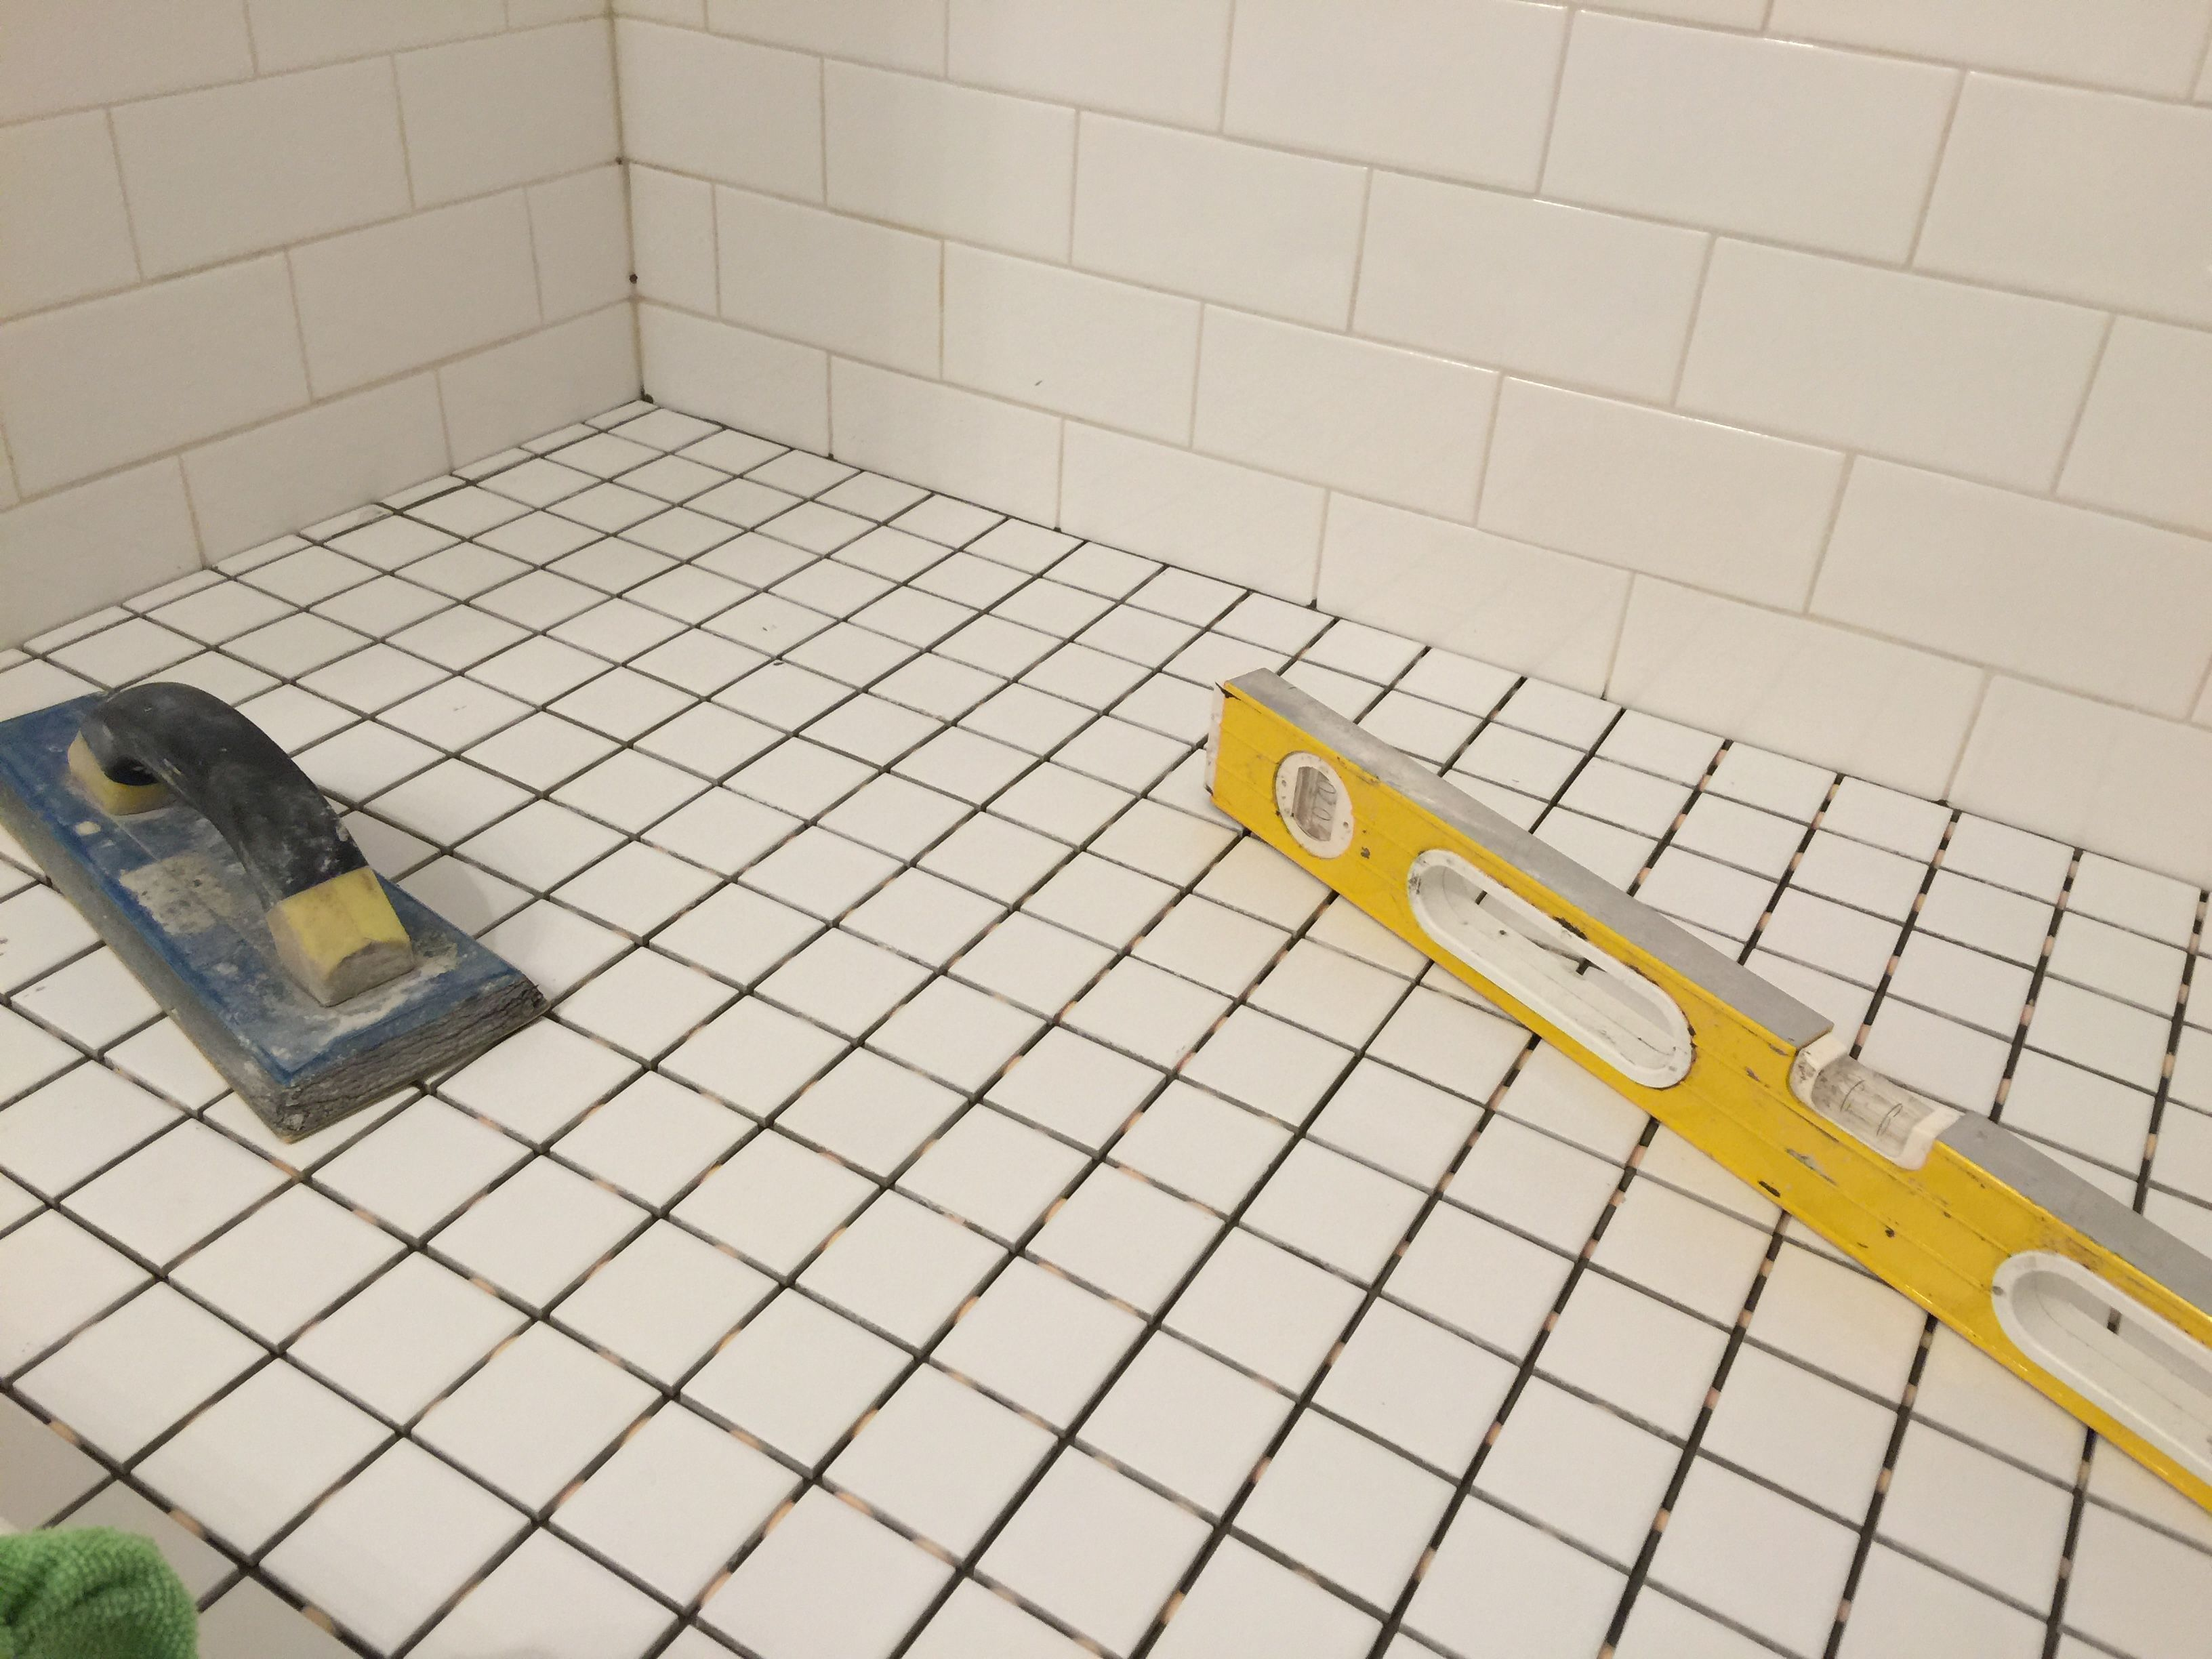 Using A Level We Can Create Proper Drain Slope Epoxy Bond Grout Is Used At All Shower Floors Never Needs Sealing And Wi Shower Floor Grout Repair Shower Pan